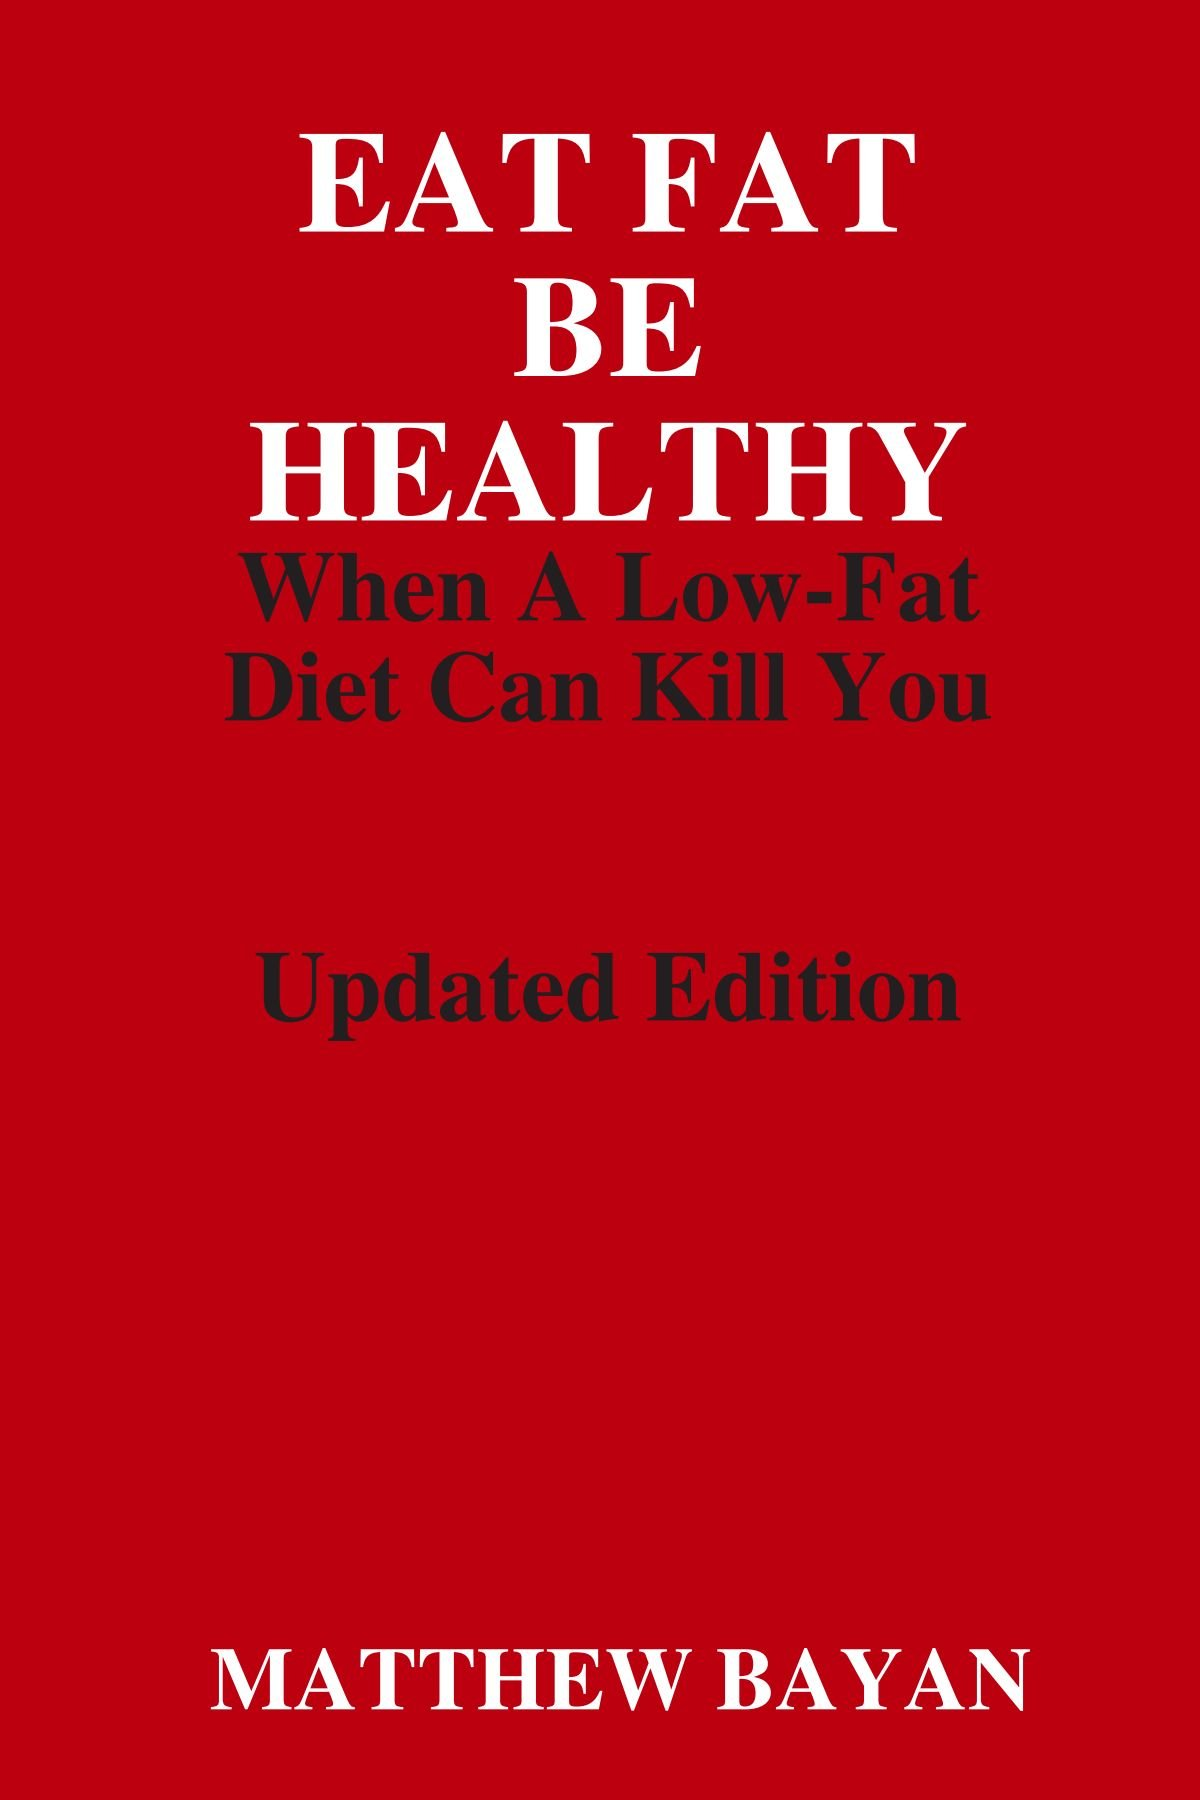 Eat Fat Be Healthy: When A Low-Fat Diet Can Kill You pdf epub